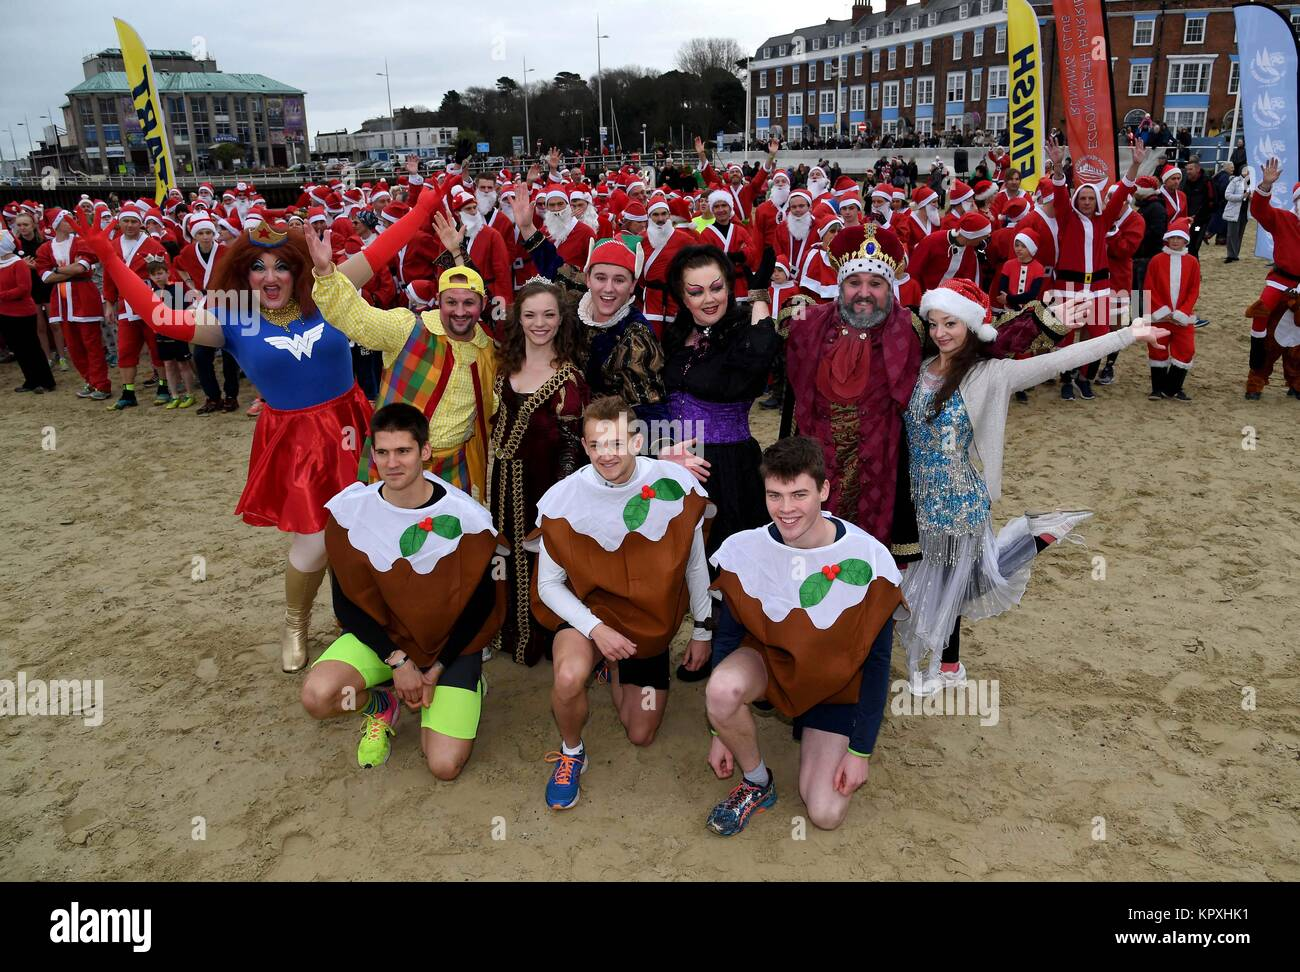 Chase the Pudding Santa race on Weymouth beach, Dorset, UK Credit: Finnbarr Webster/Alamy Live News - Stock Image